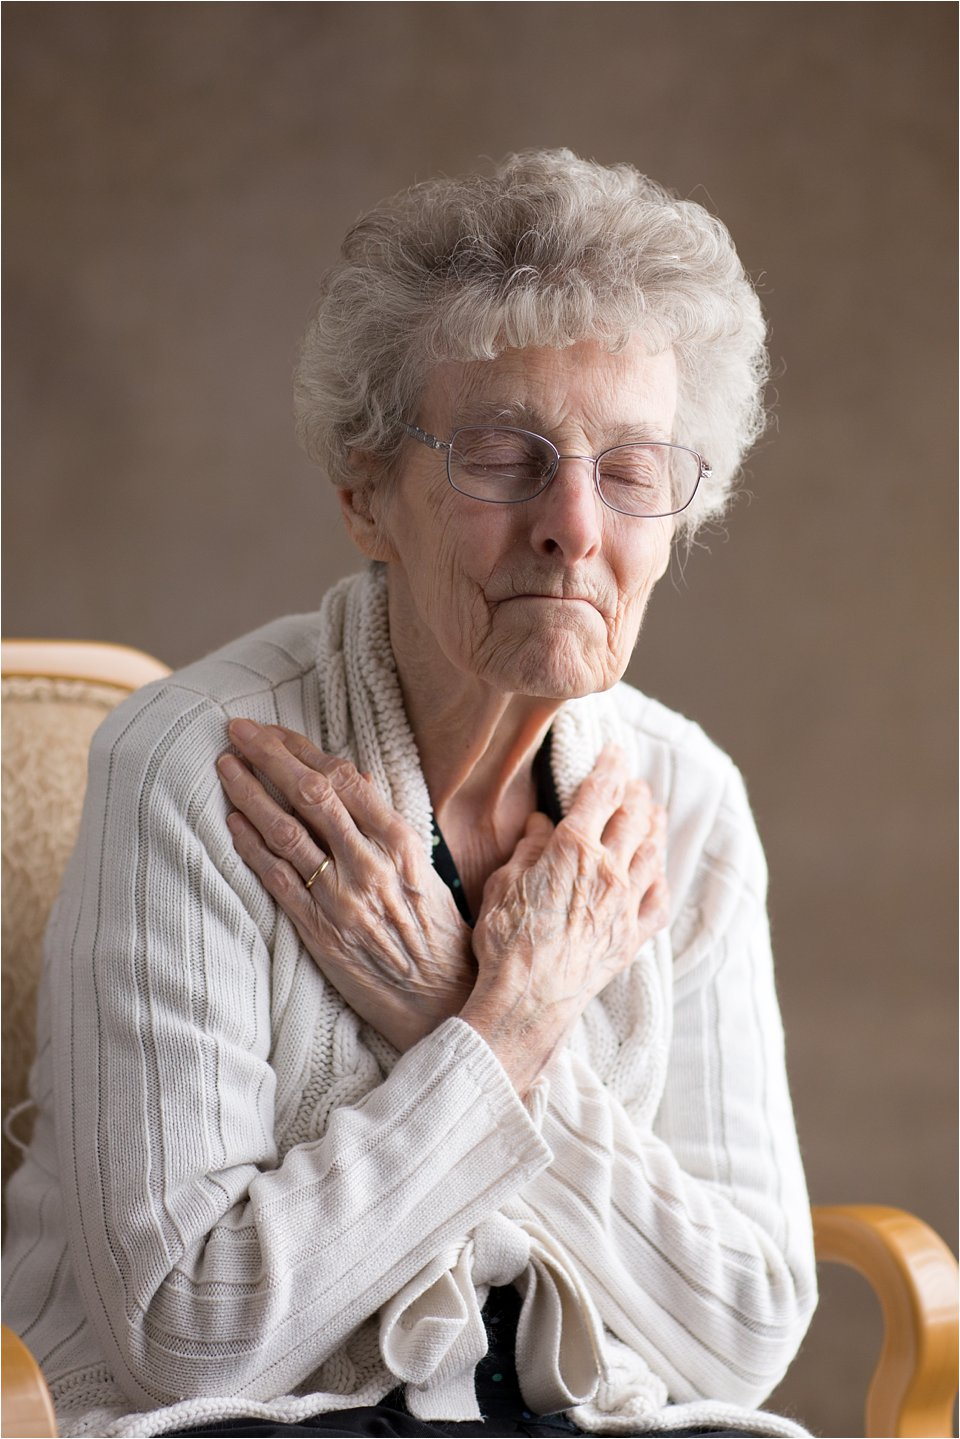 Elderly woman praying (C) Maundy Mitchell